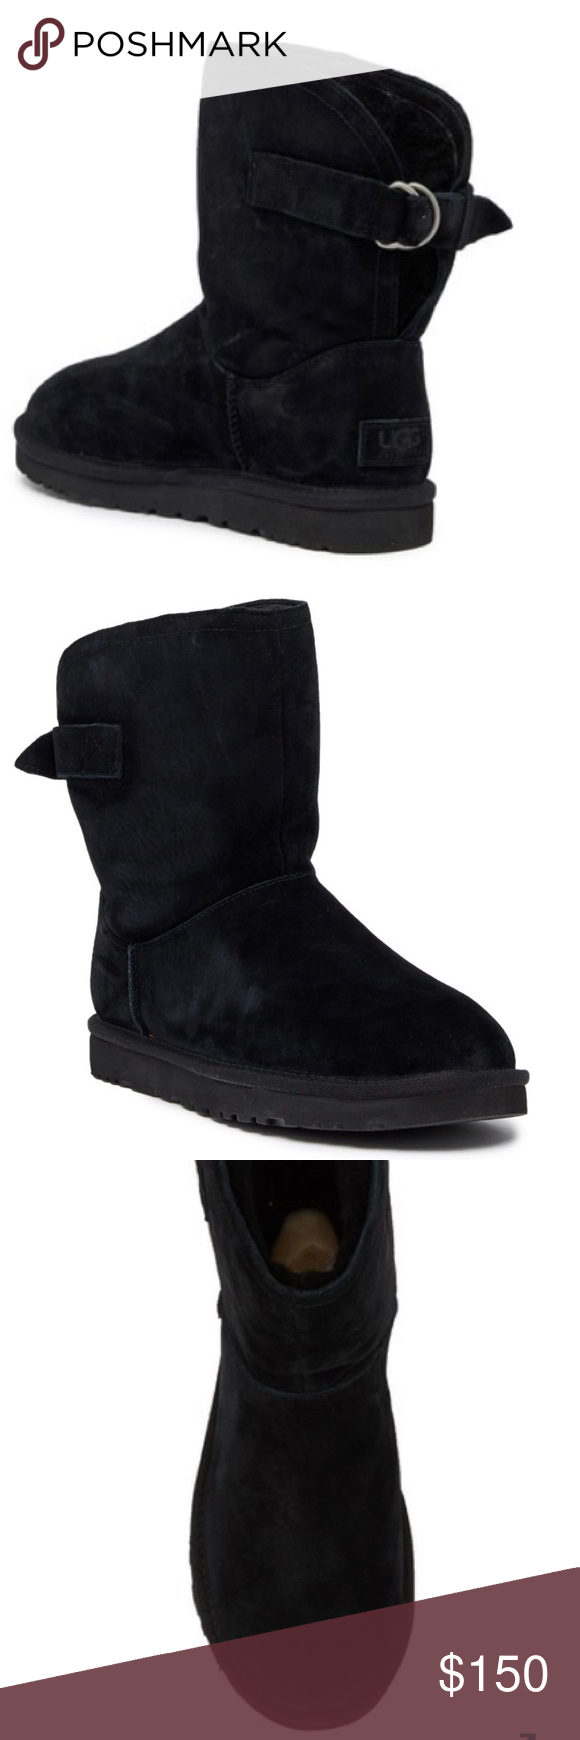 1ac669c16b3 UGG Shoes | Brand New Authentic Black Remora Ugg Boots | Color ...